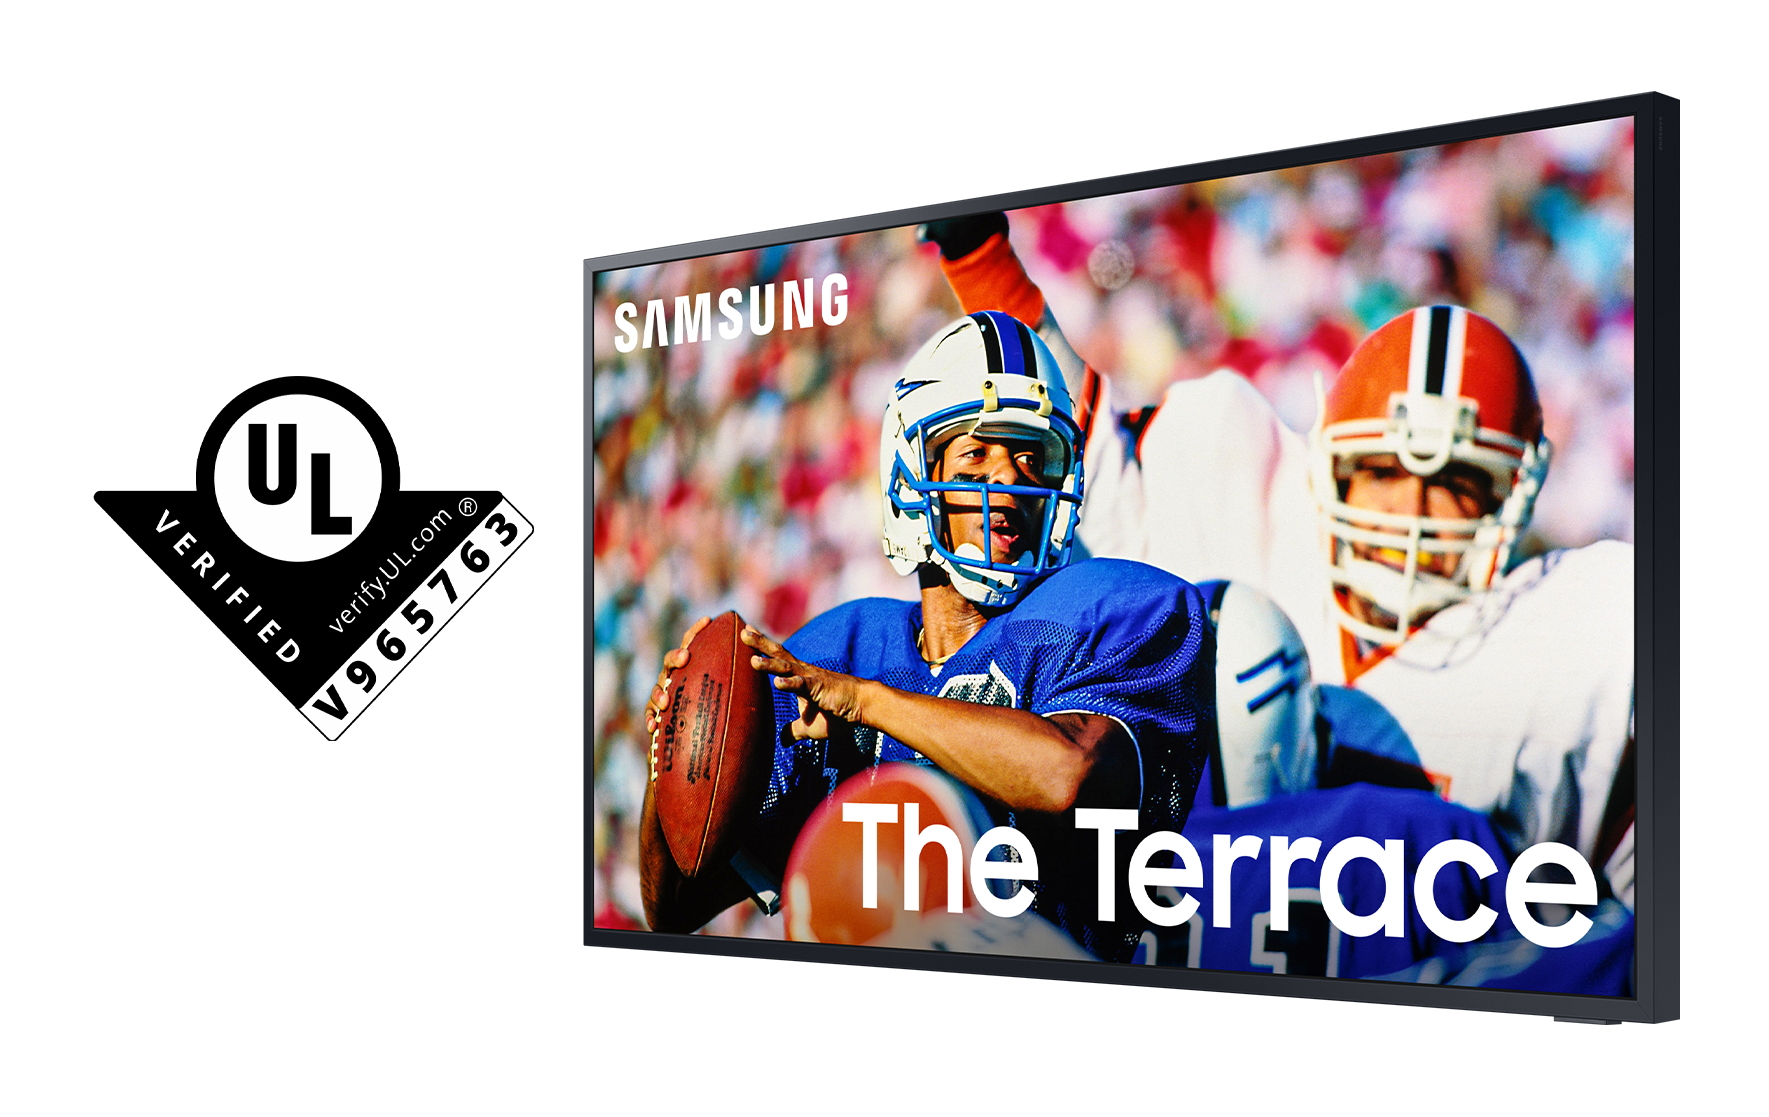 Samsung's The Terrace TV first to earn UL's outdoor visibility verification